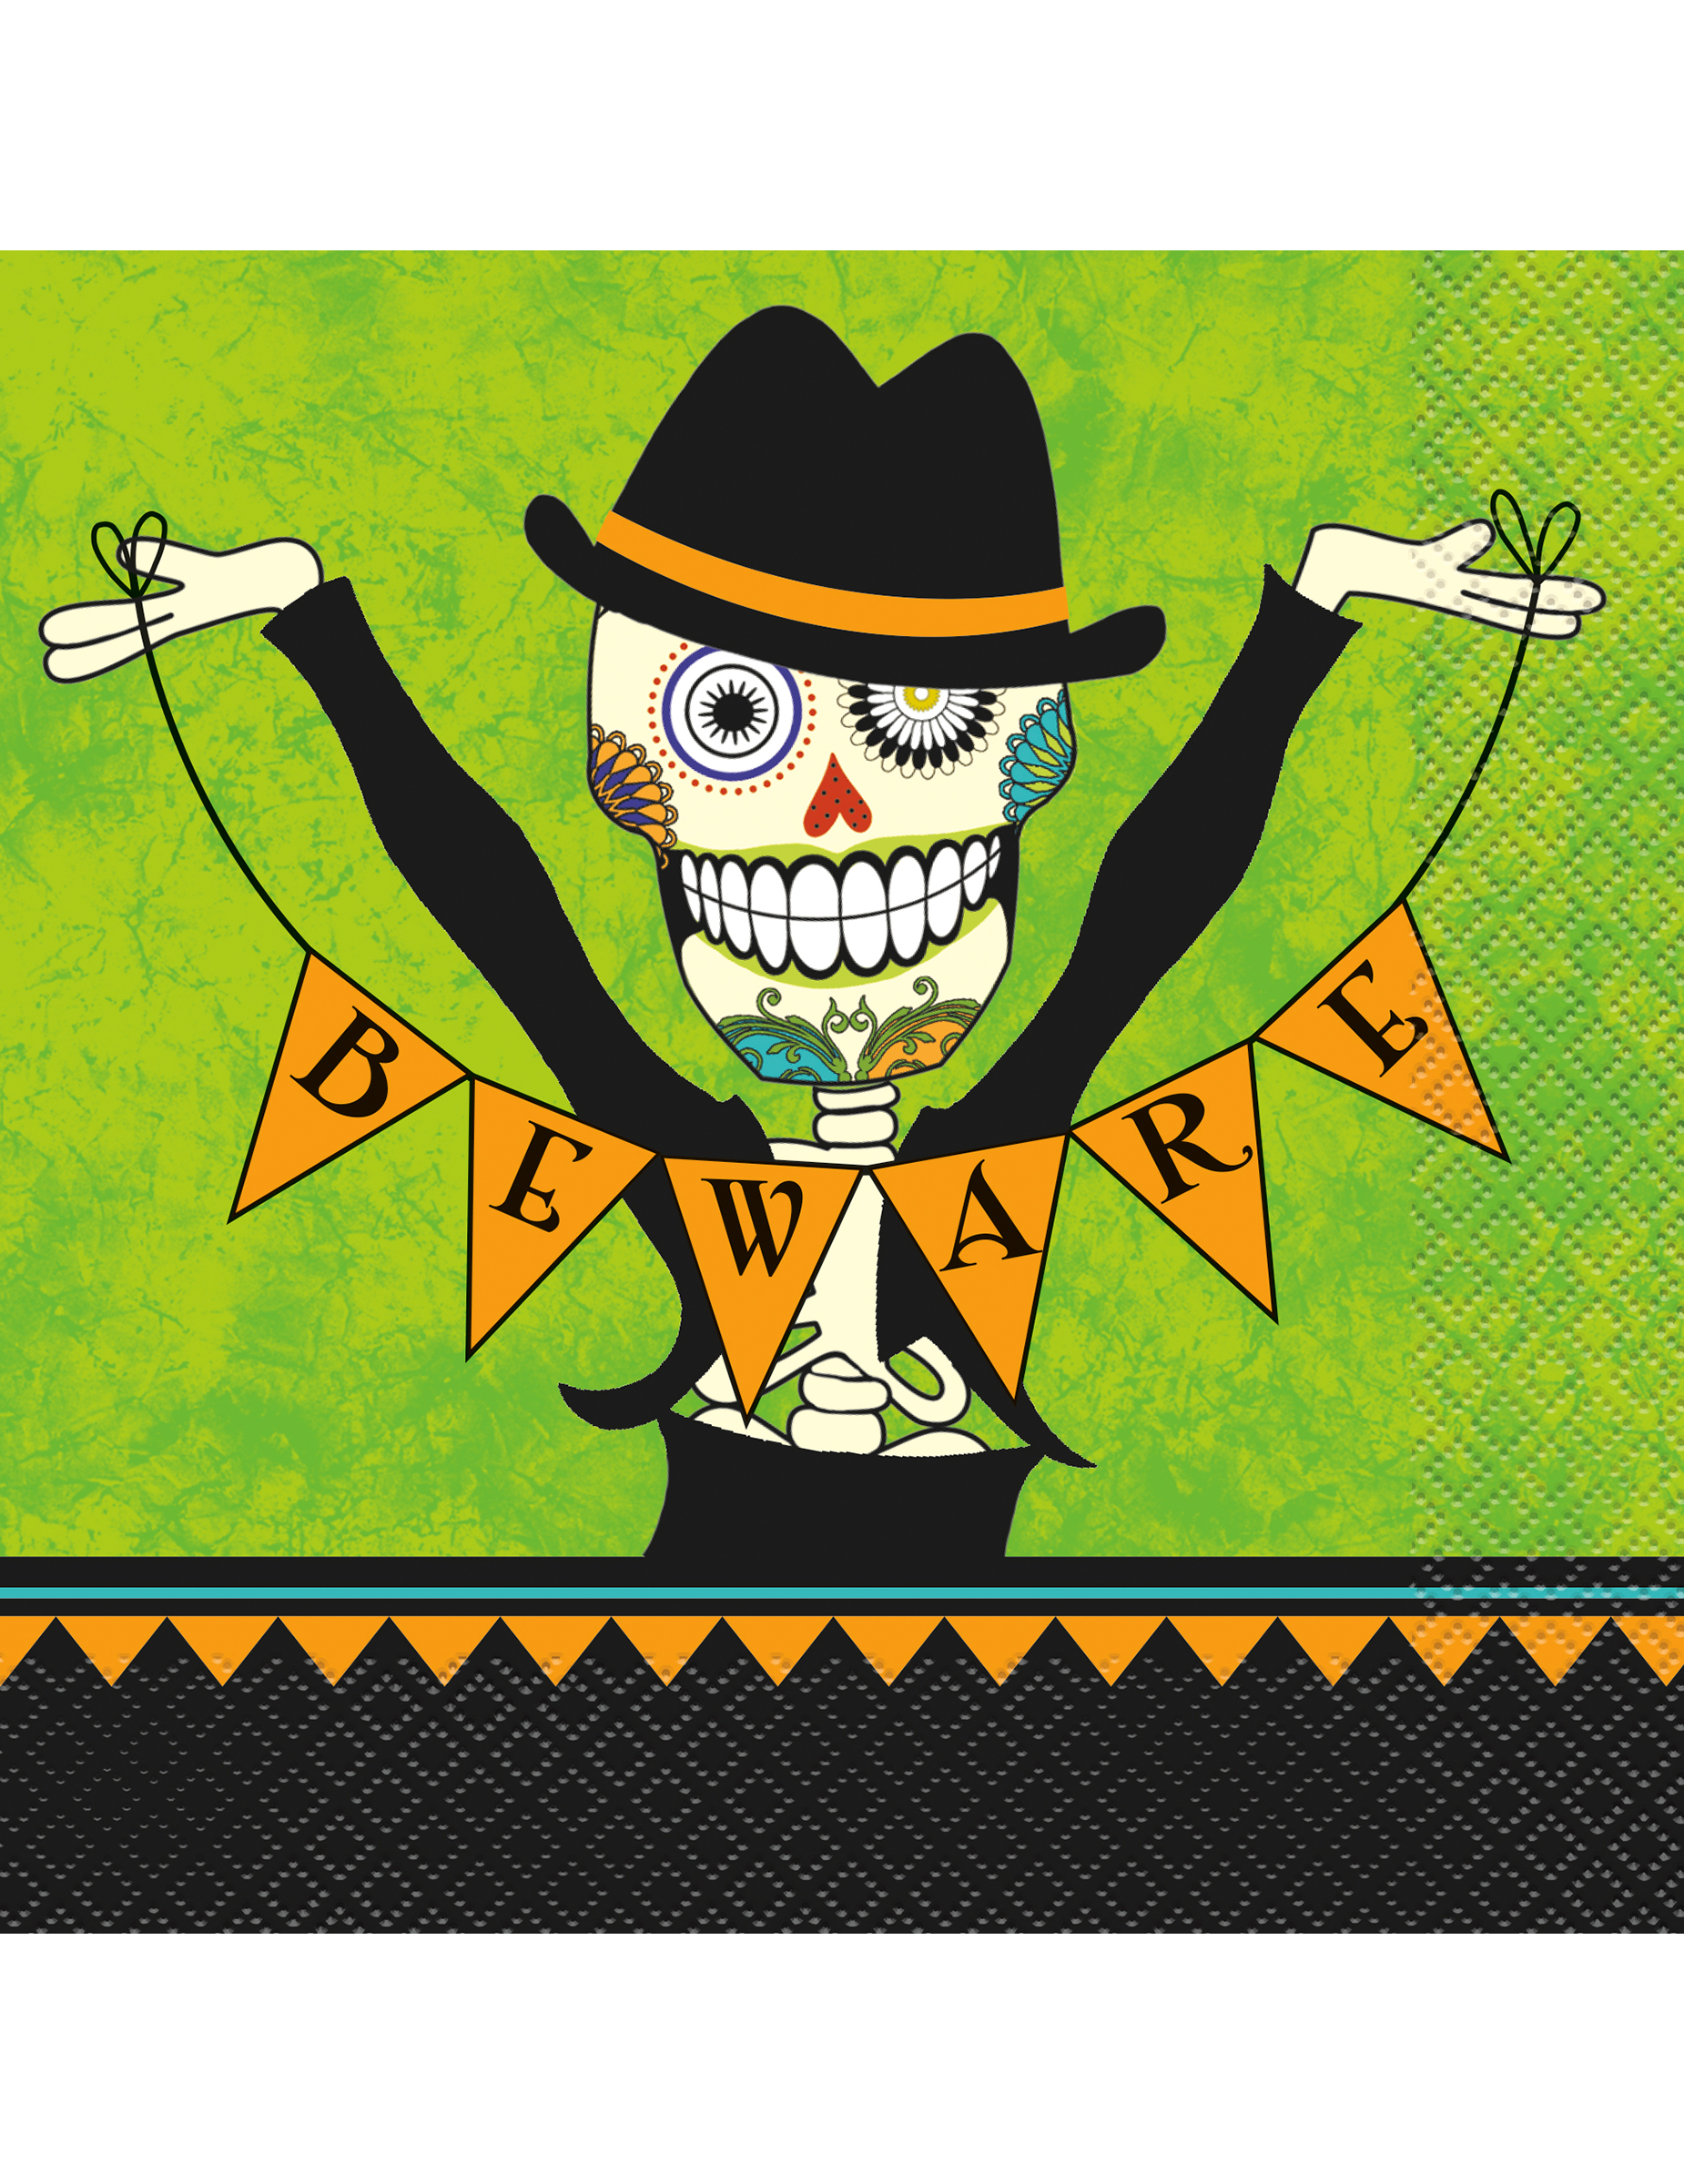 halloween and day of the dead essays Learn about harvest holidays in north america like halloween and a similar mexican holiday, the day of the dead origins of halloween and the day of the dead.